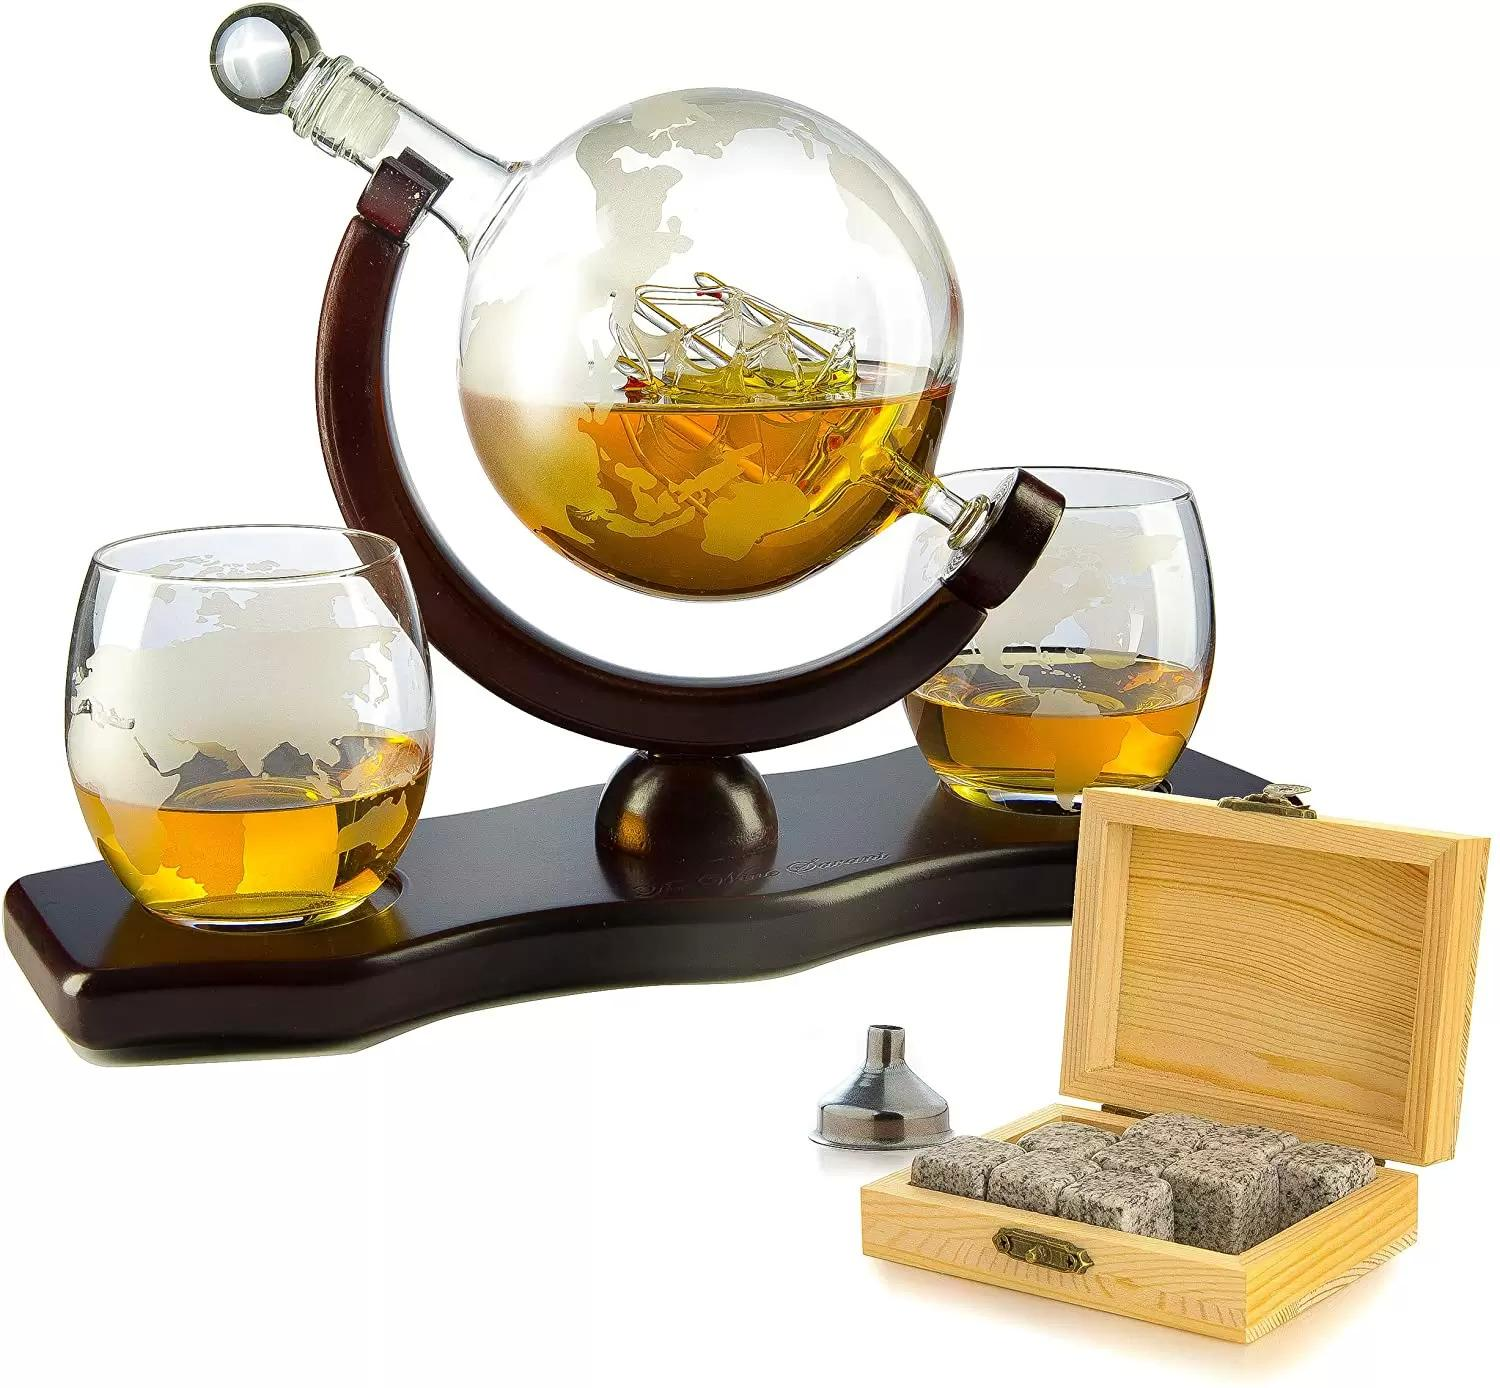 Whiskey Decanter Globe Set with 2 Etched Globe Whisky Glasses for $39.99 Shipped